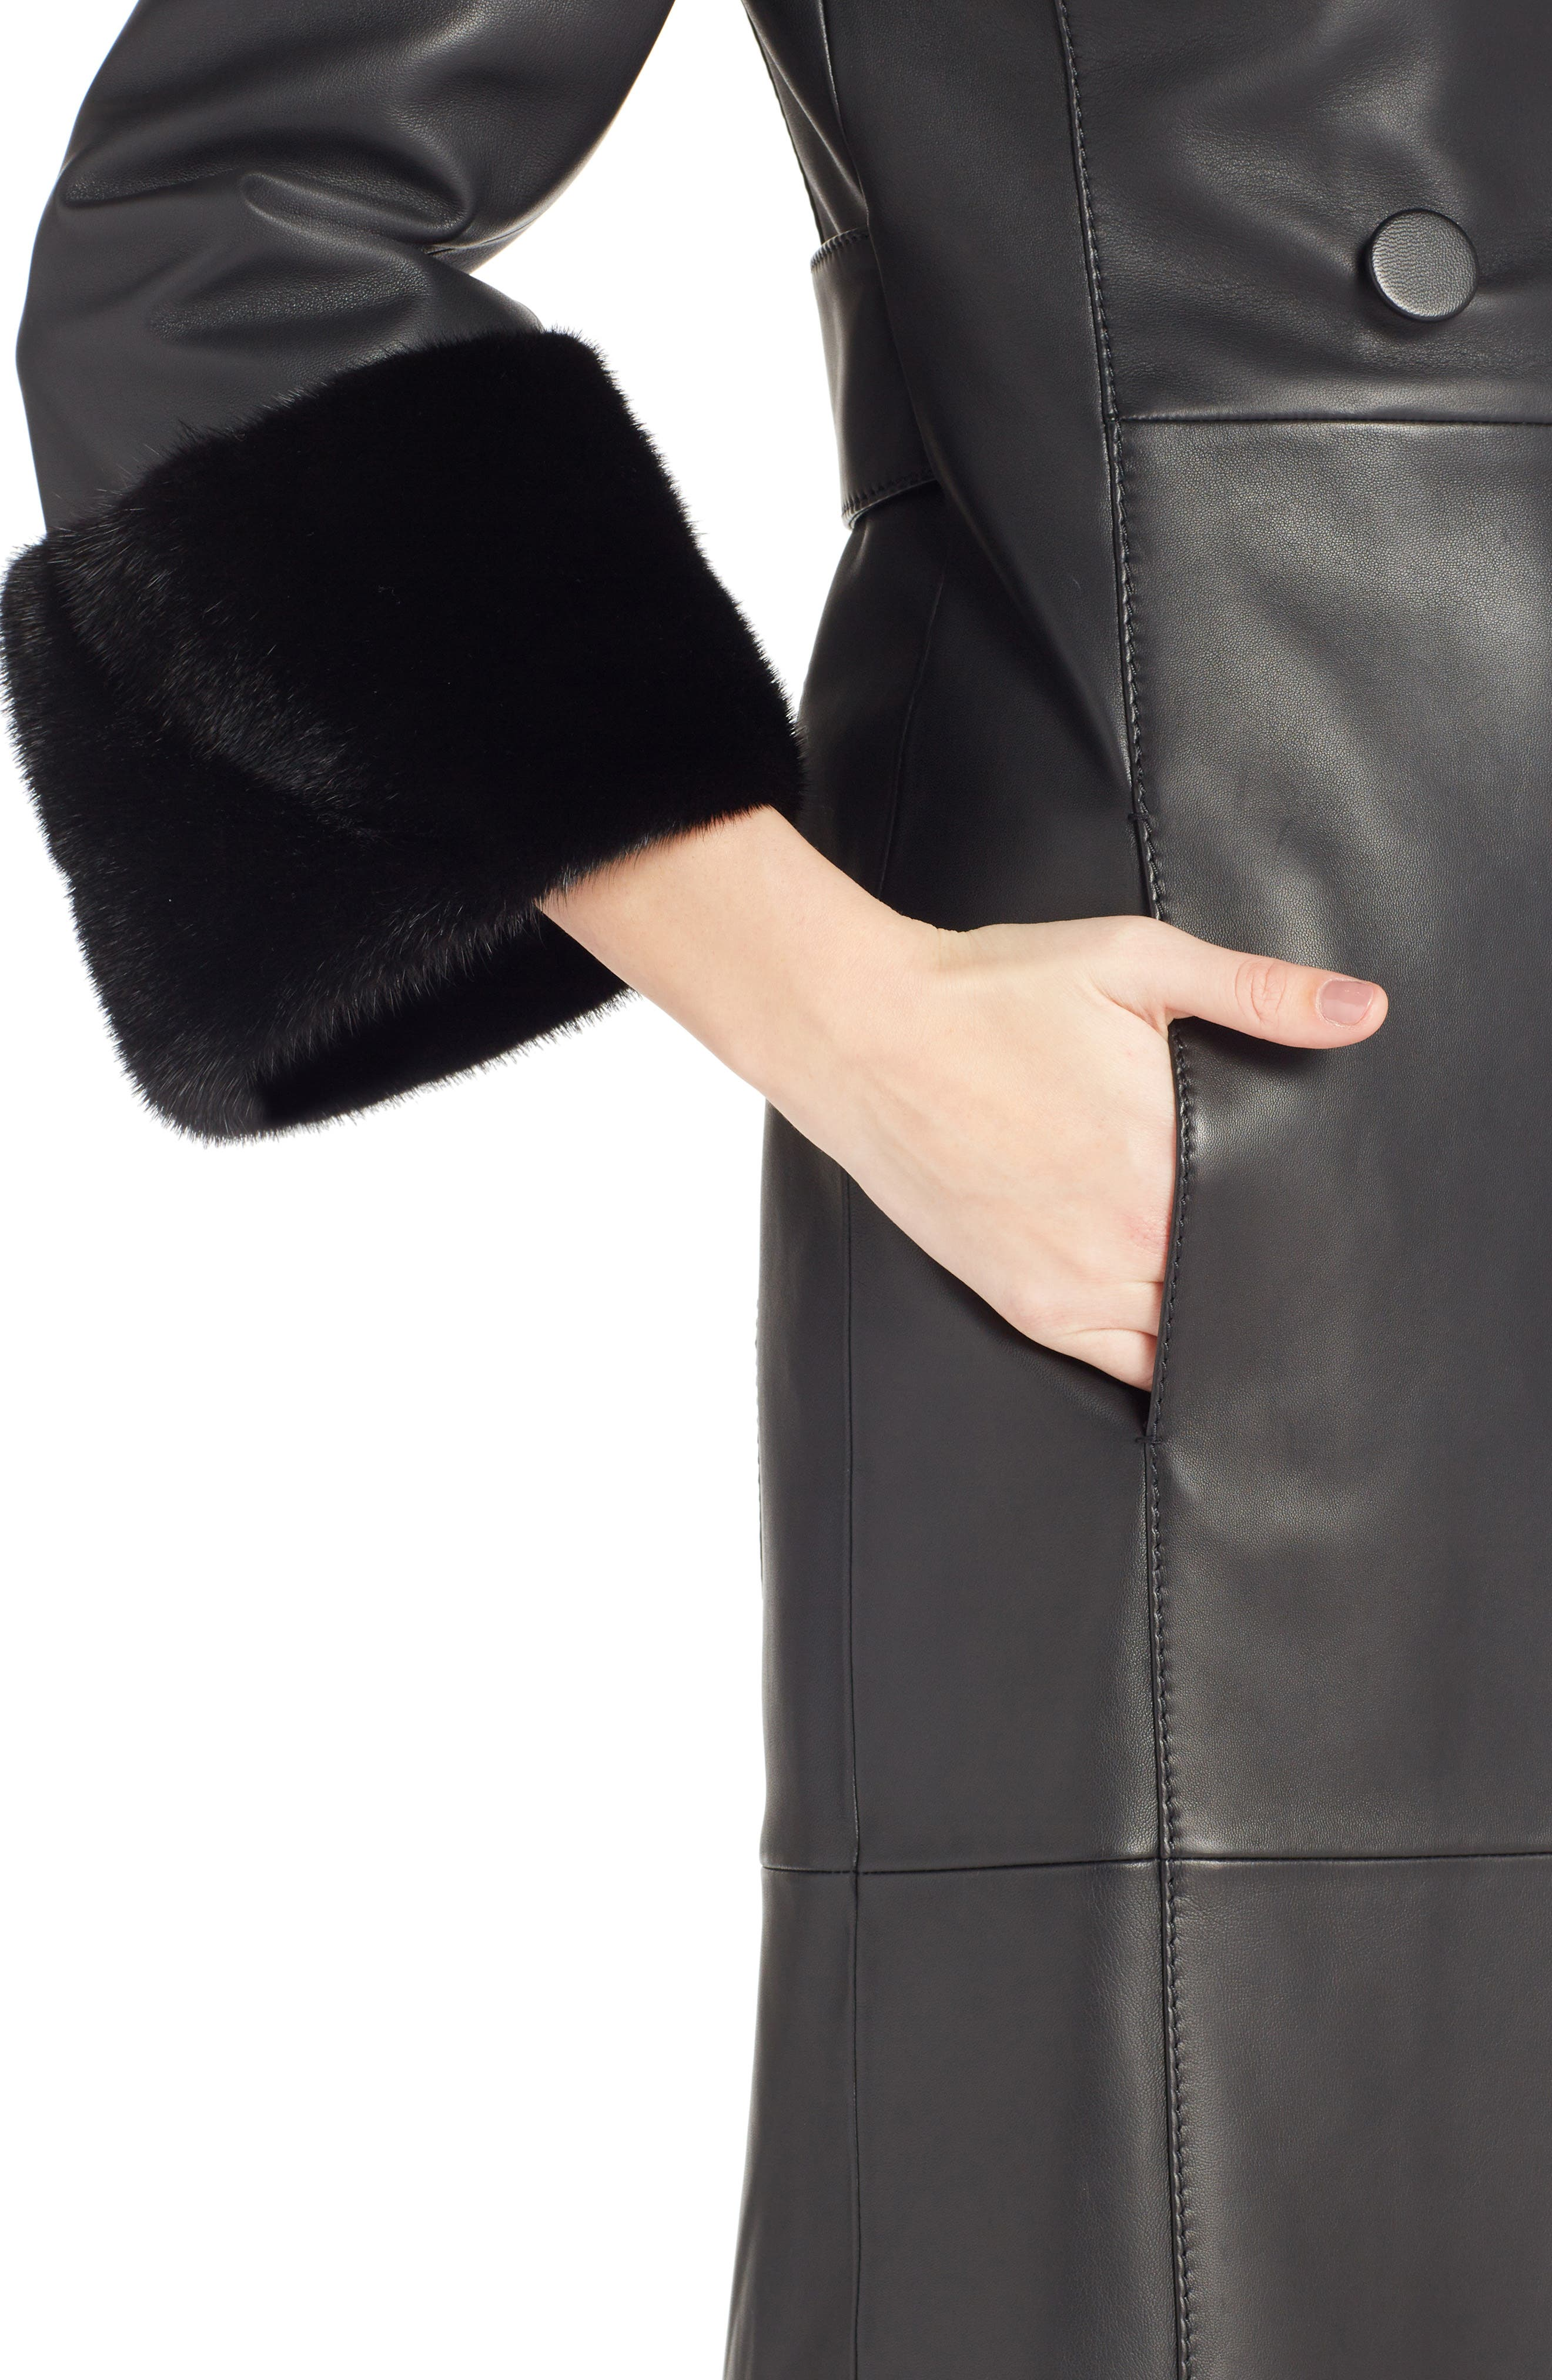 FENDI,                             Leather Double Breasted Coat with Genuine Mink Fur Trim,                             Alternate thumbnail 4, color,                             BLACK